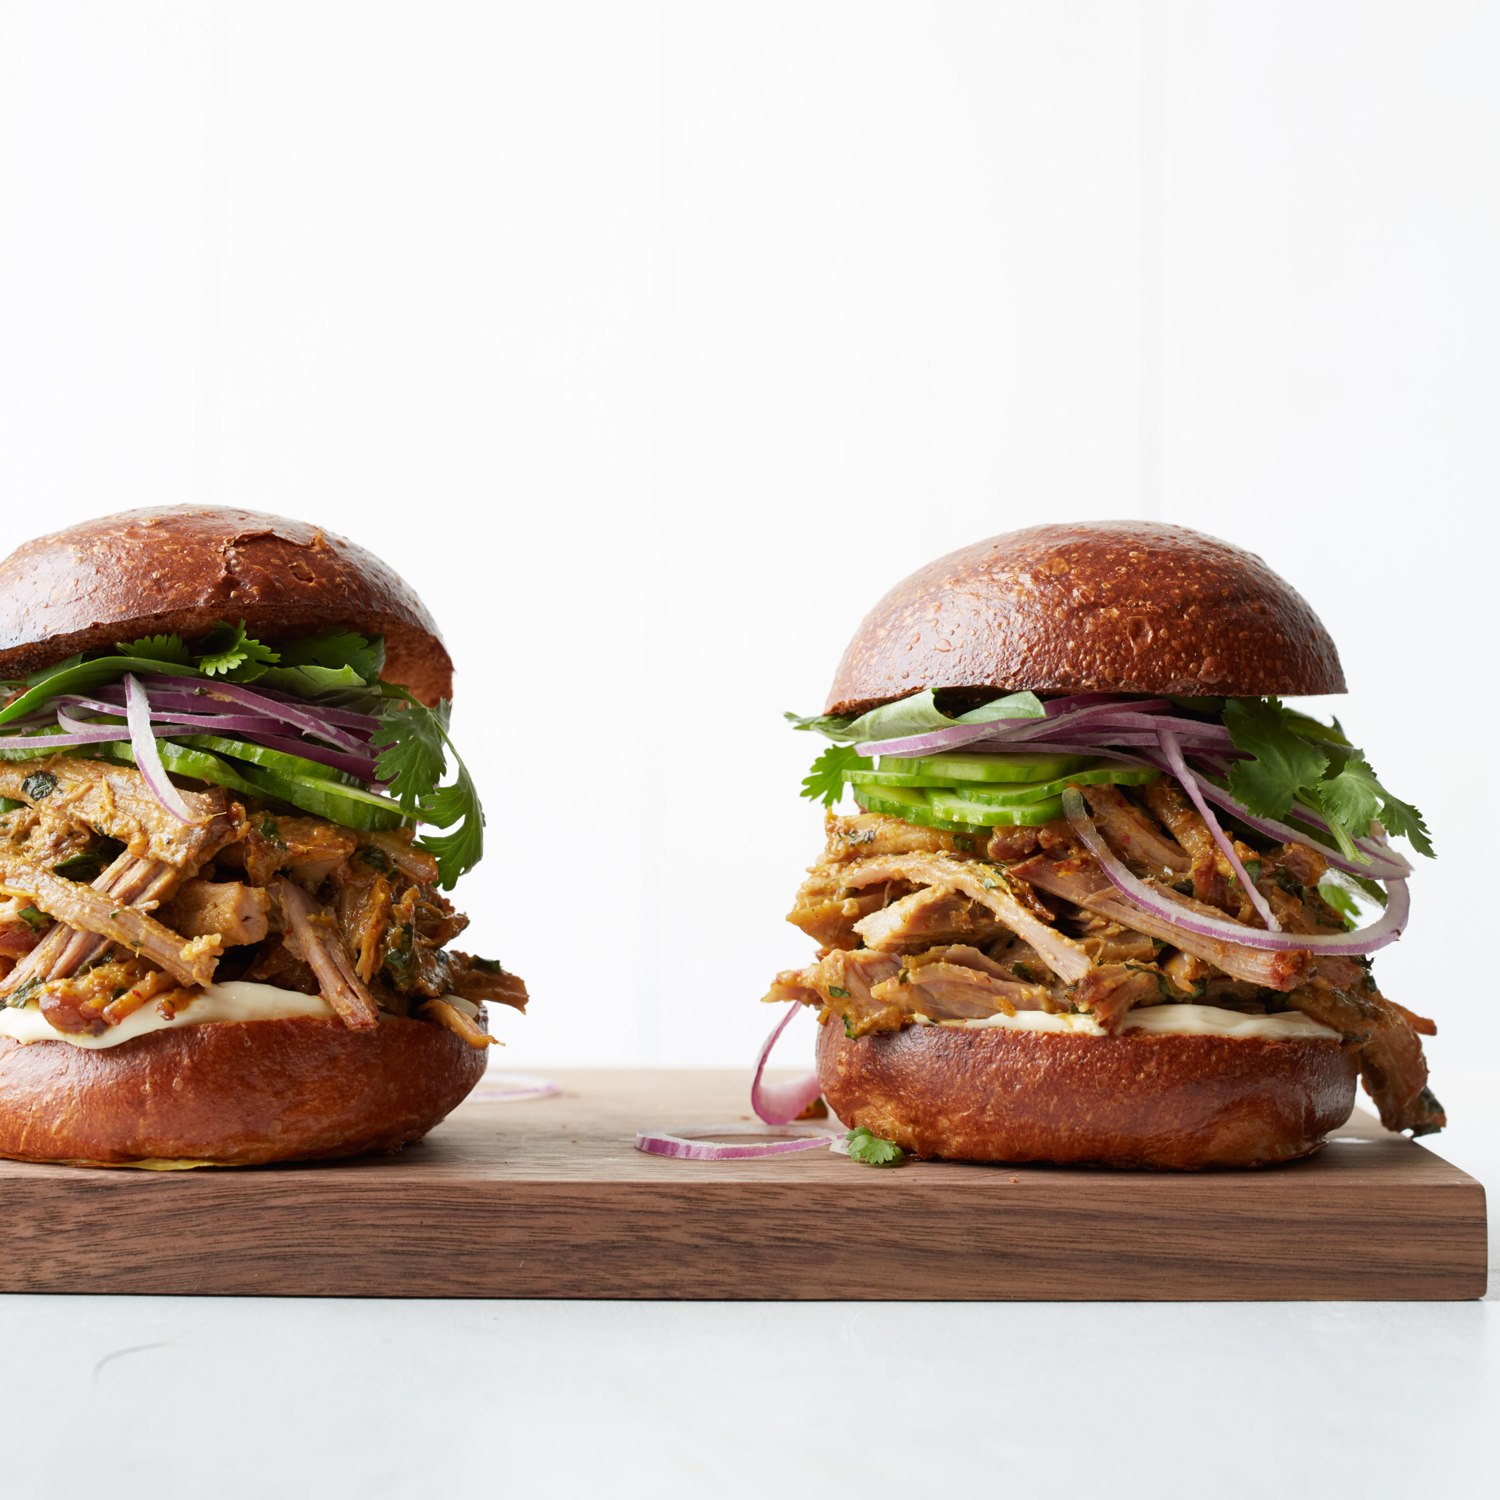 Thai-Style Pulled Pork Sandwiches